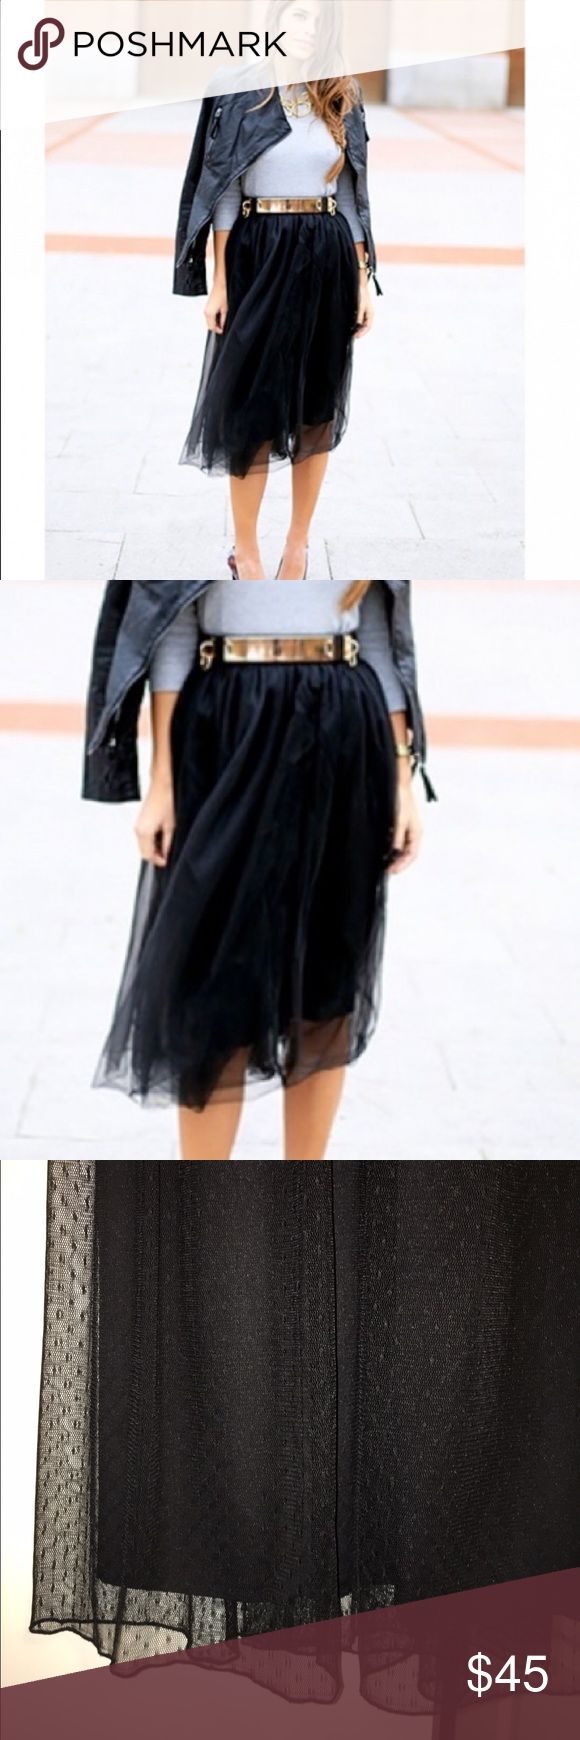 🌟🌟HOST PICK🌟🌟Zara Trafaluc Black Tulle skirt No tags, worn twice, in great condition, belongs to 2015 winter collection, its a midi 2 layer skirt, has elastic waist, super chick and comfy at the same time, dont miss it🙌🏻🙌🏻🌟 Zara Skirts Midi